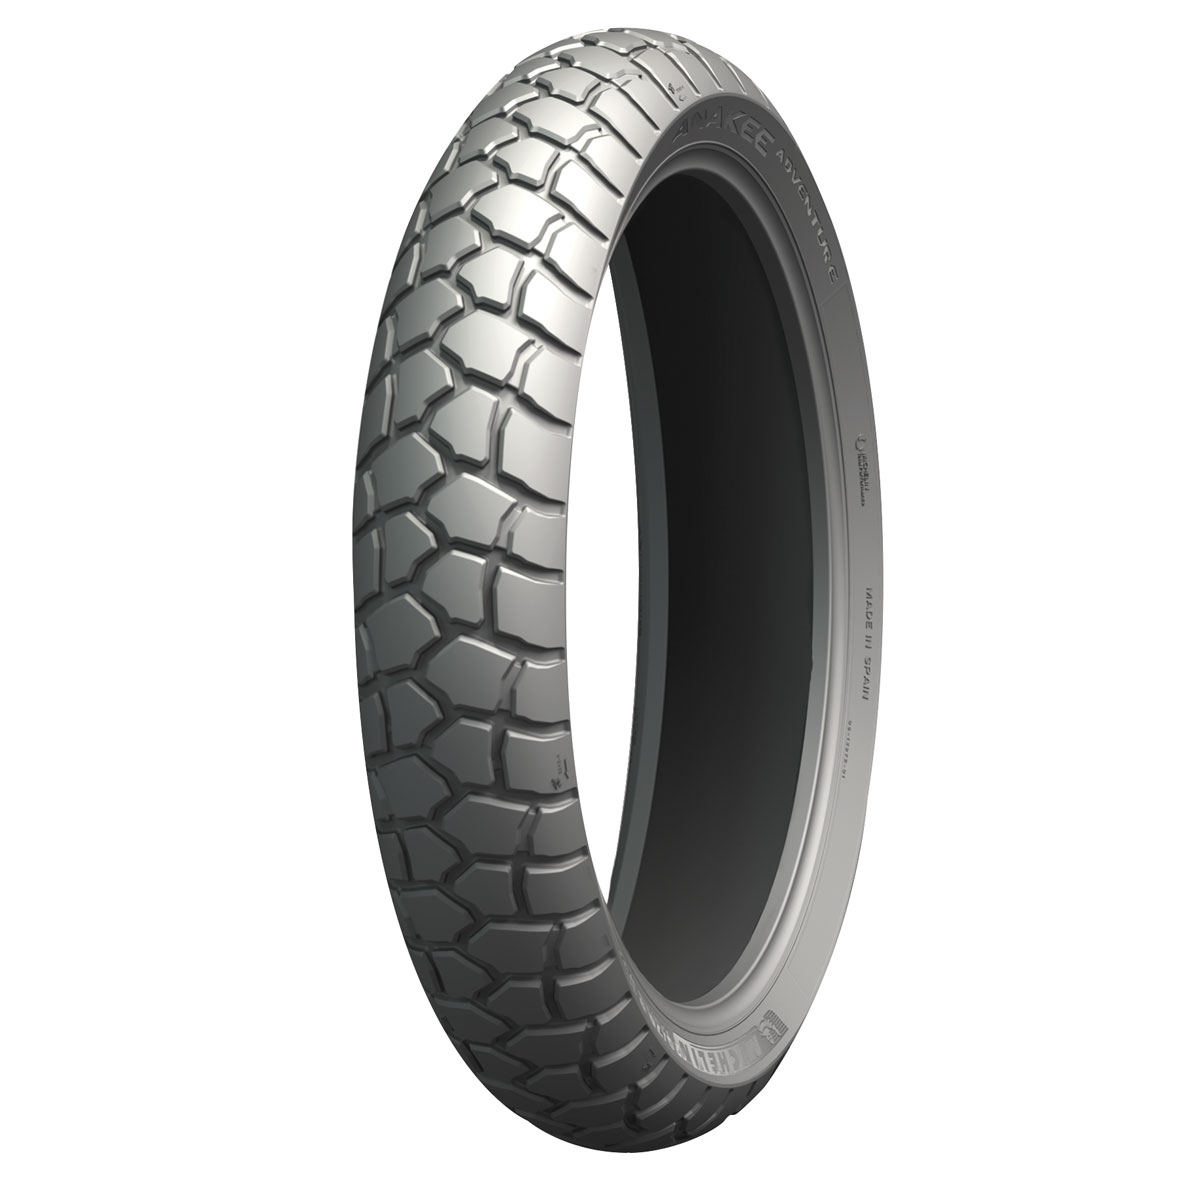 Michelin Anakee Adventure 120 70 VR 19